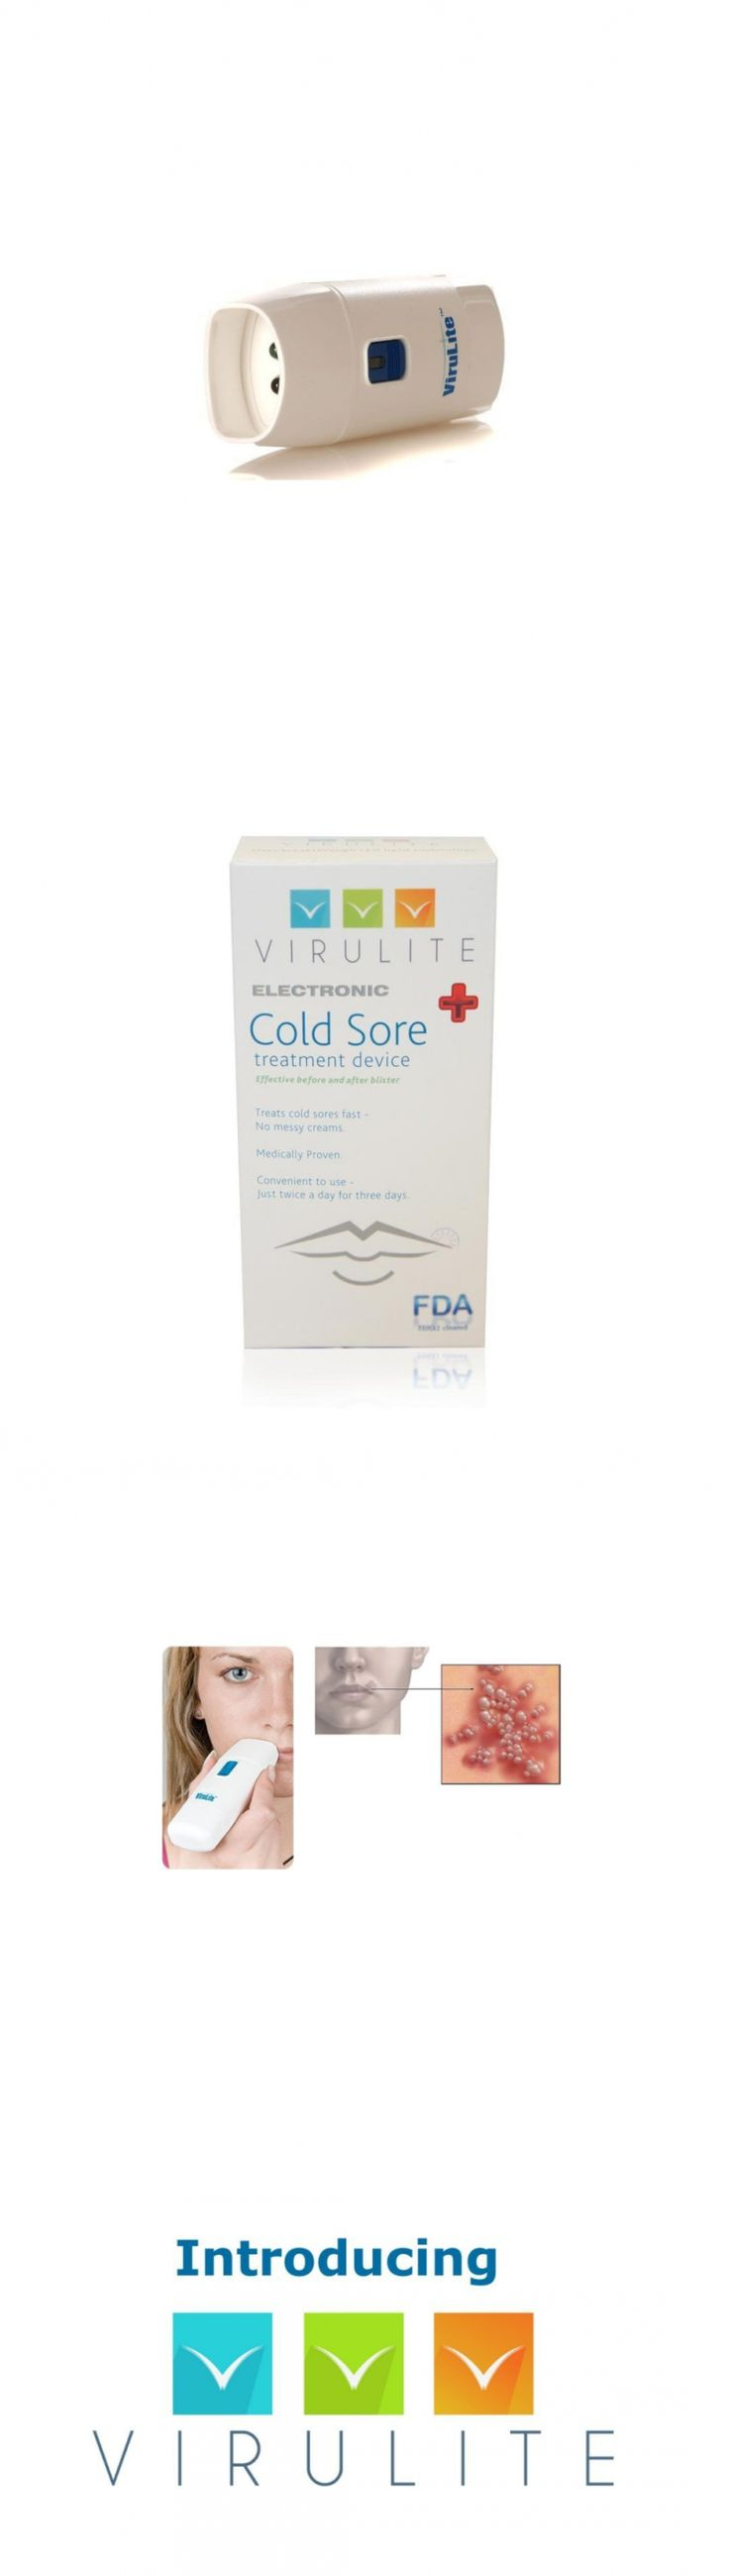 Cold Sores: Virulite Fda Approved Electronic Cold Sore Treatment Device 1 Ea -> BUY IT NOW ONLY: $104.82 on eBay!